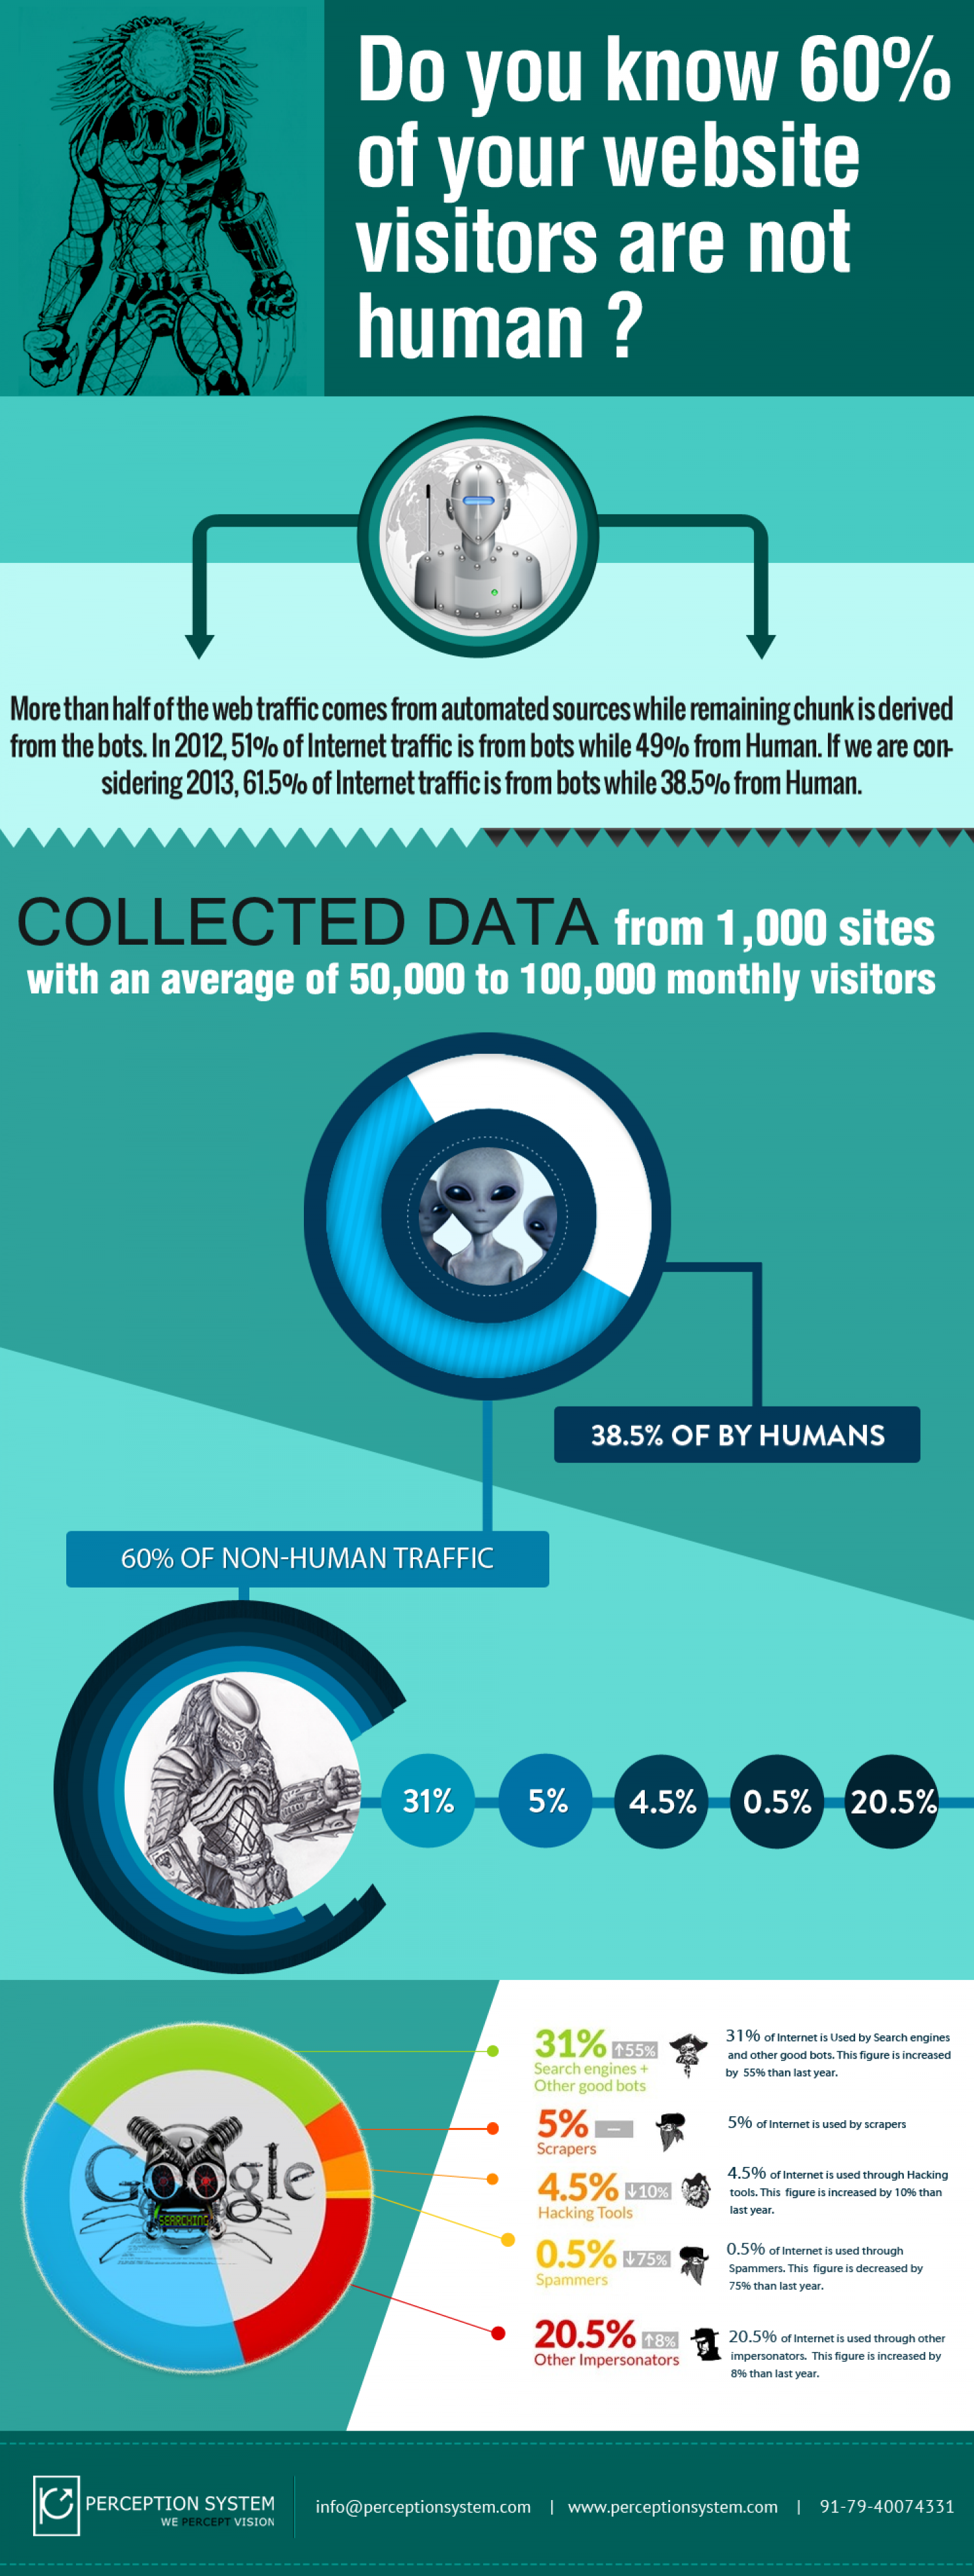 6 out of 10 Non-Human Beings Are Internet Traffic Generators Infographic